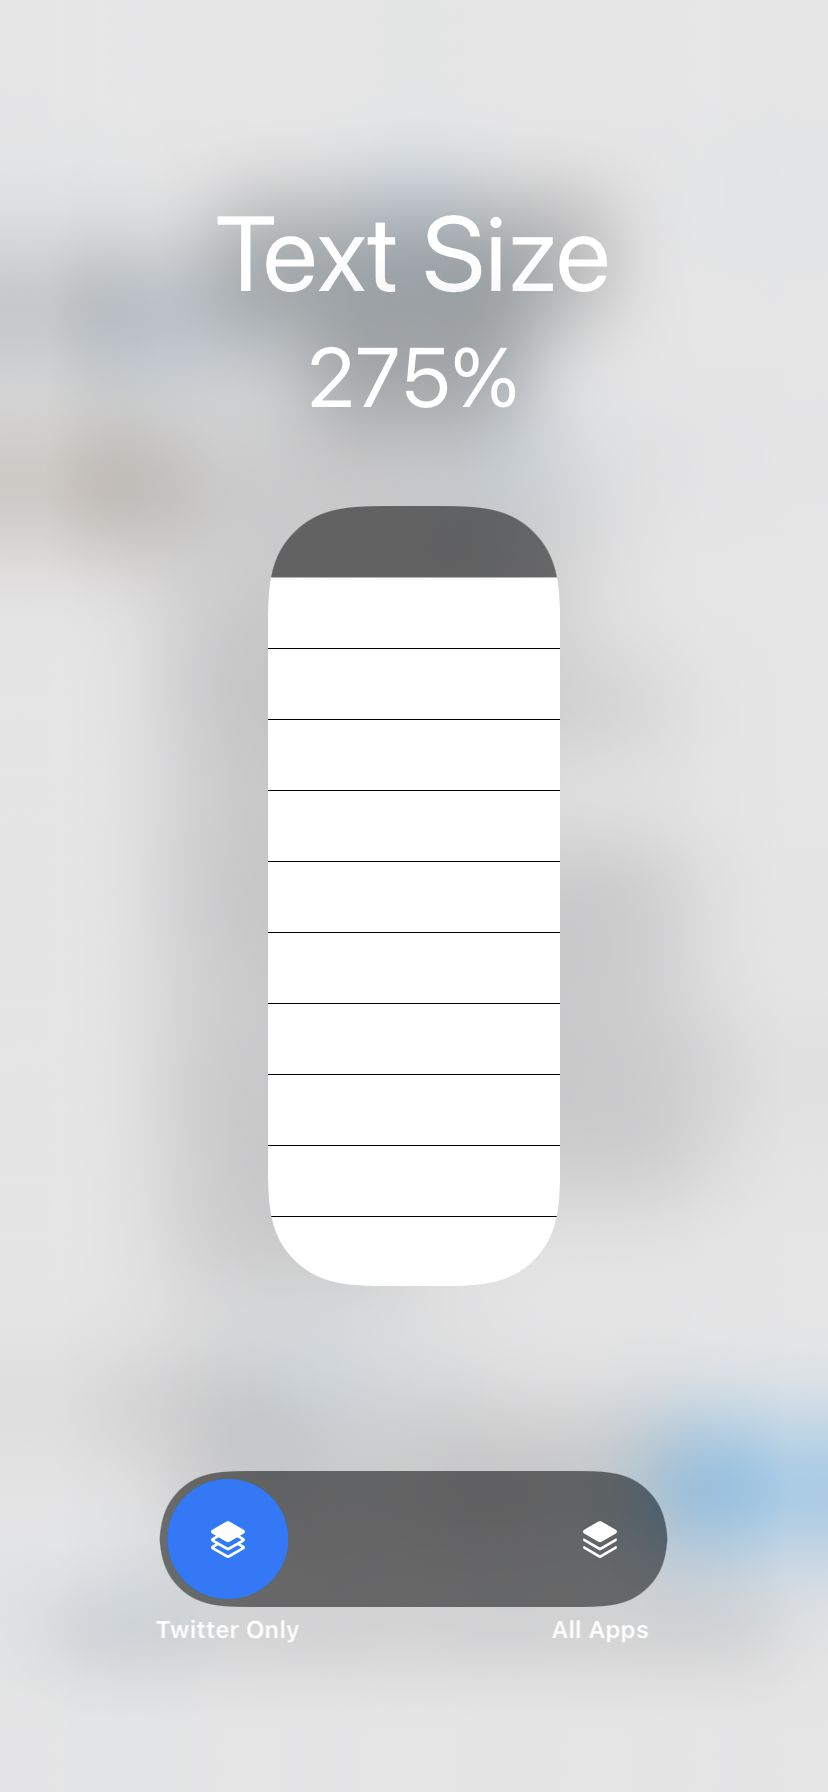 Use the selector at the bottom to change the text size for one application.